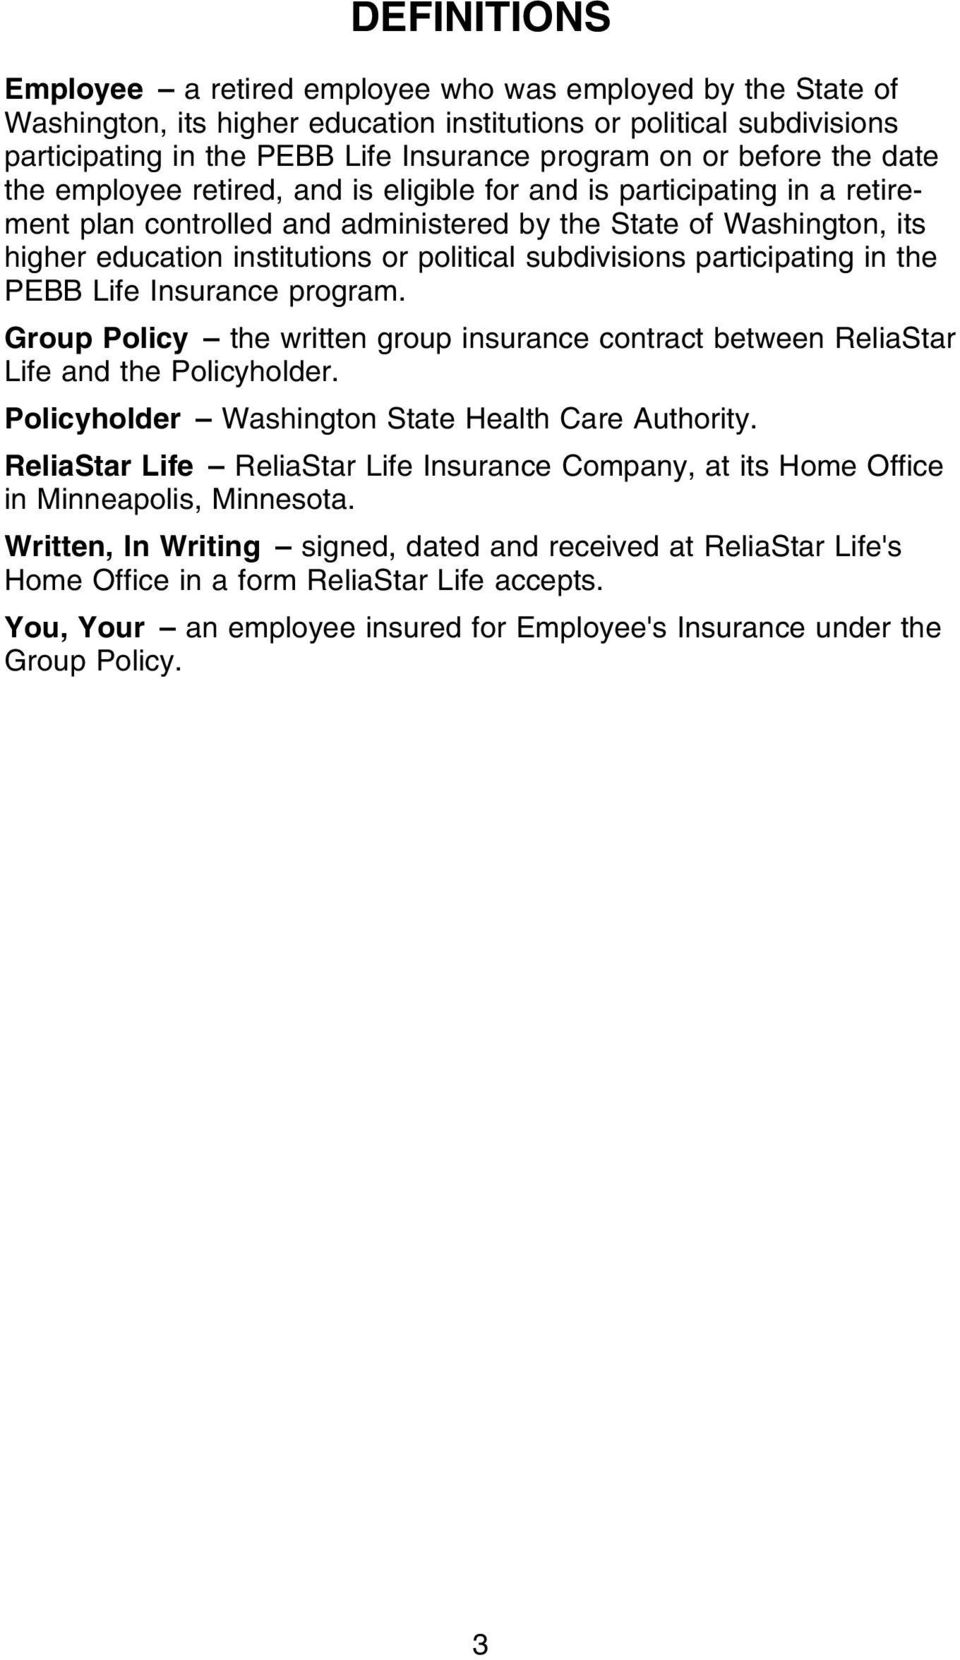 political subdivisions participating in the PEBB Life Insurance program. Group Policy the written group insurance contract between ReliaStar Life and the Policyholder.